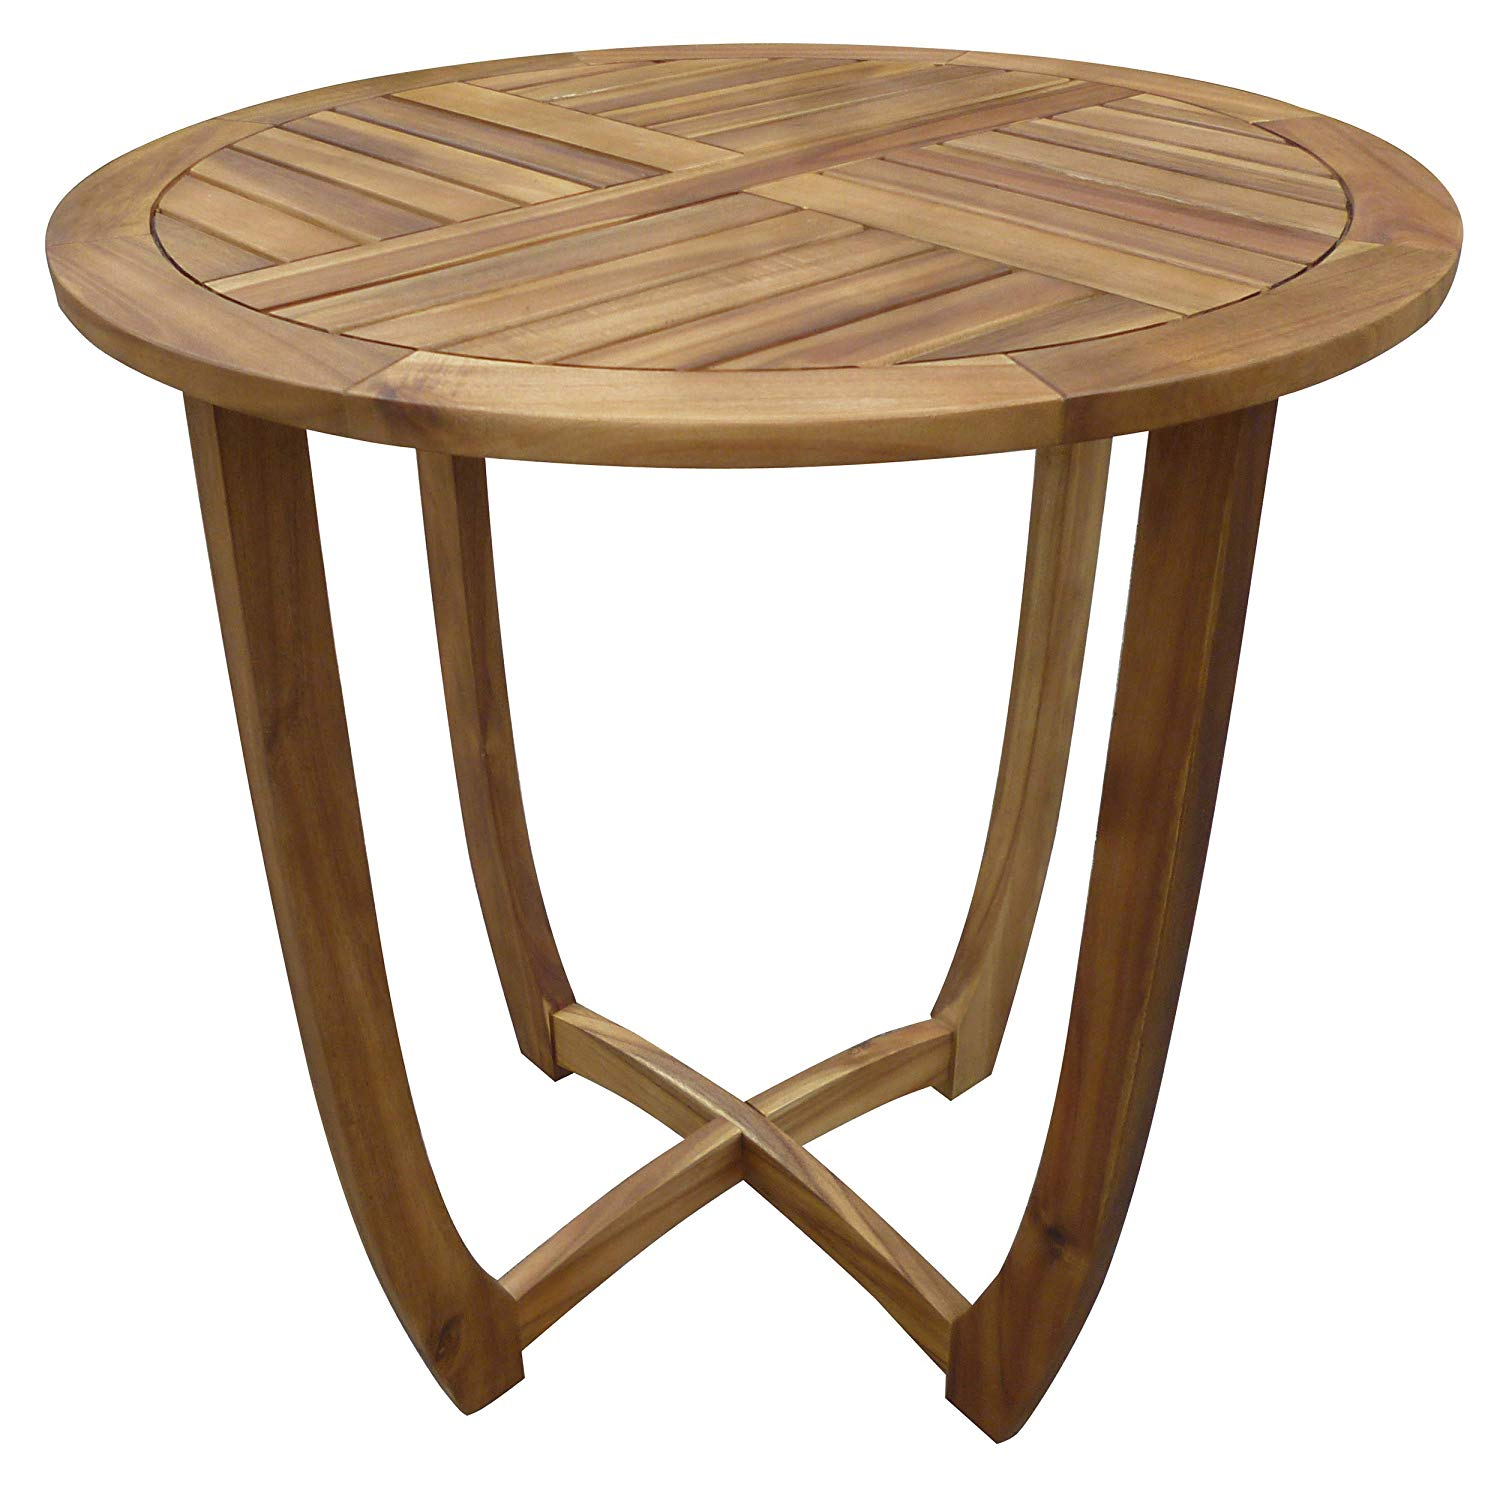 great furniture navarro round wood outdoor teak accent table perfect for patio with finish garden black and silver rug very mirrored bedside off white side dining wall tables